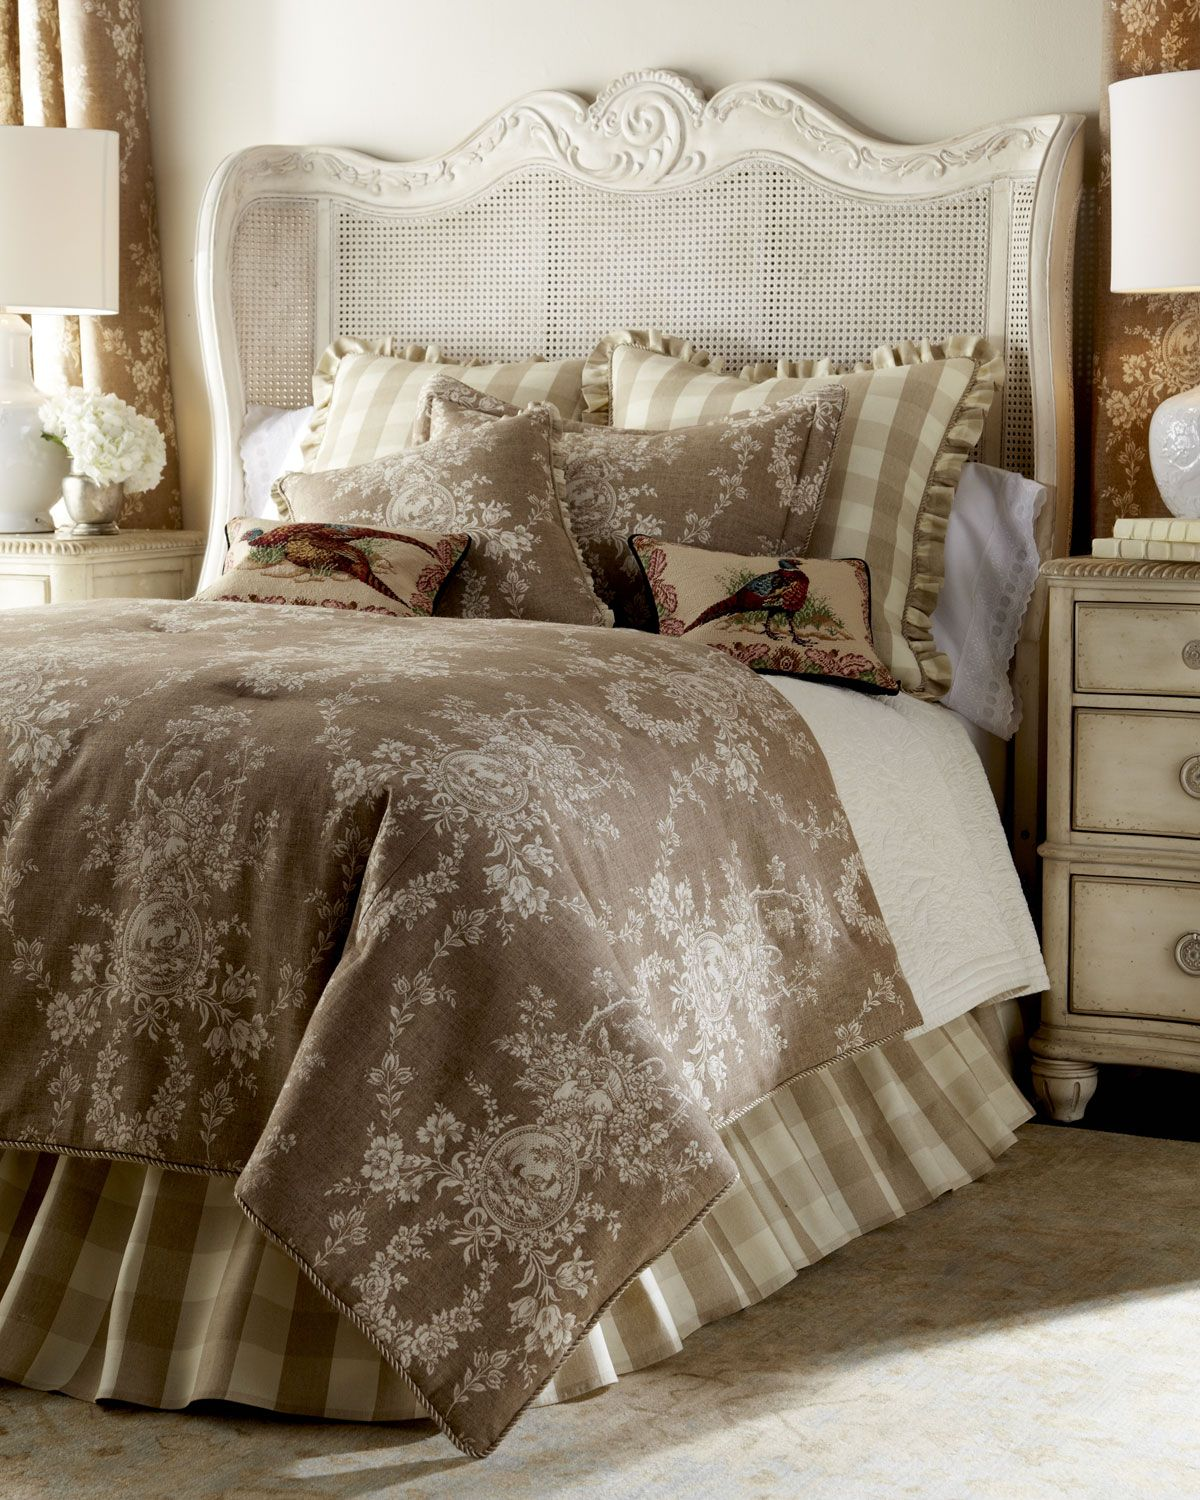 for home your panels traditional family chairs curtains ideas curtain room beige and arm decor black interior floral wall with toile contemporary